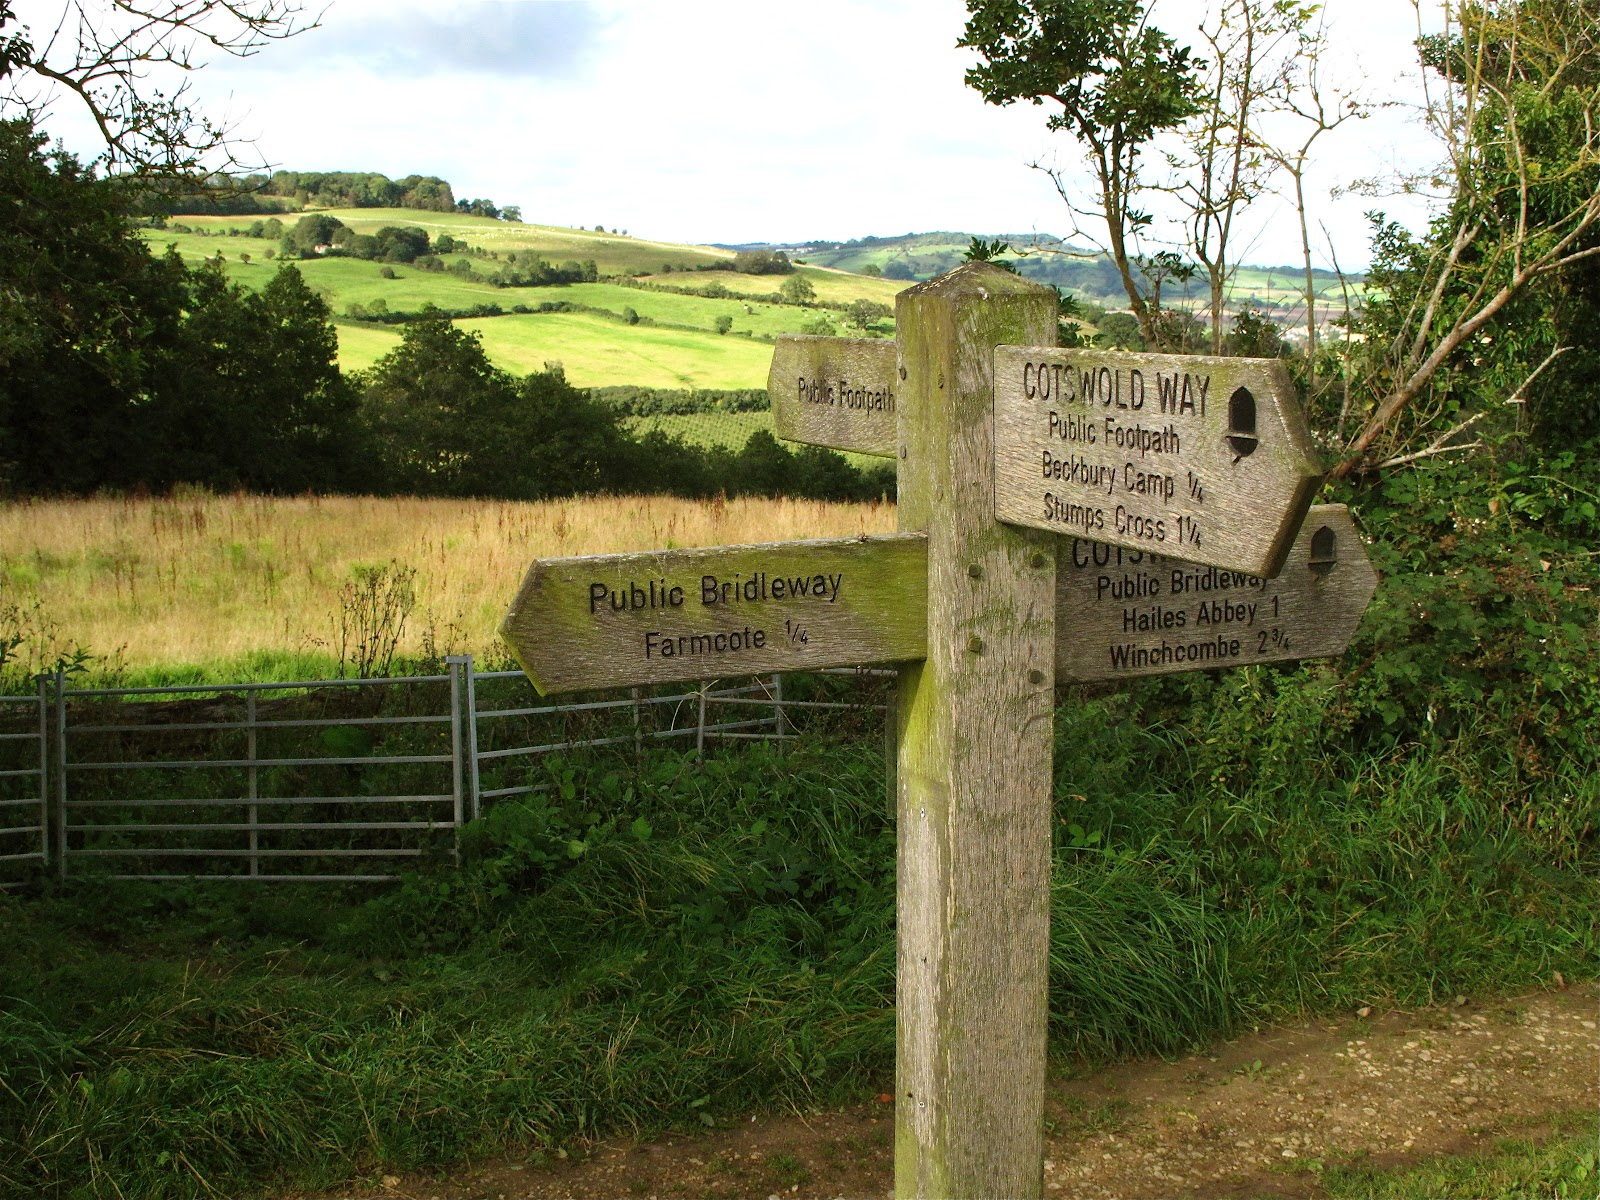 the cotswold way.JPG